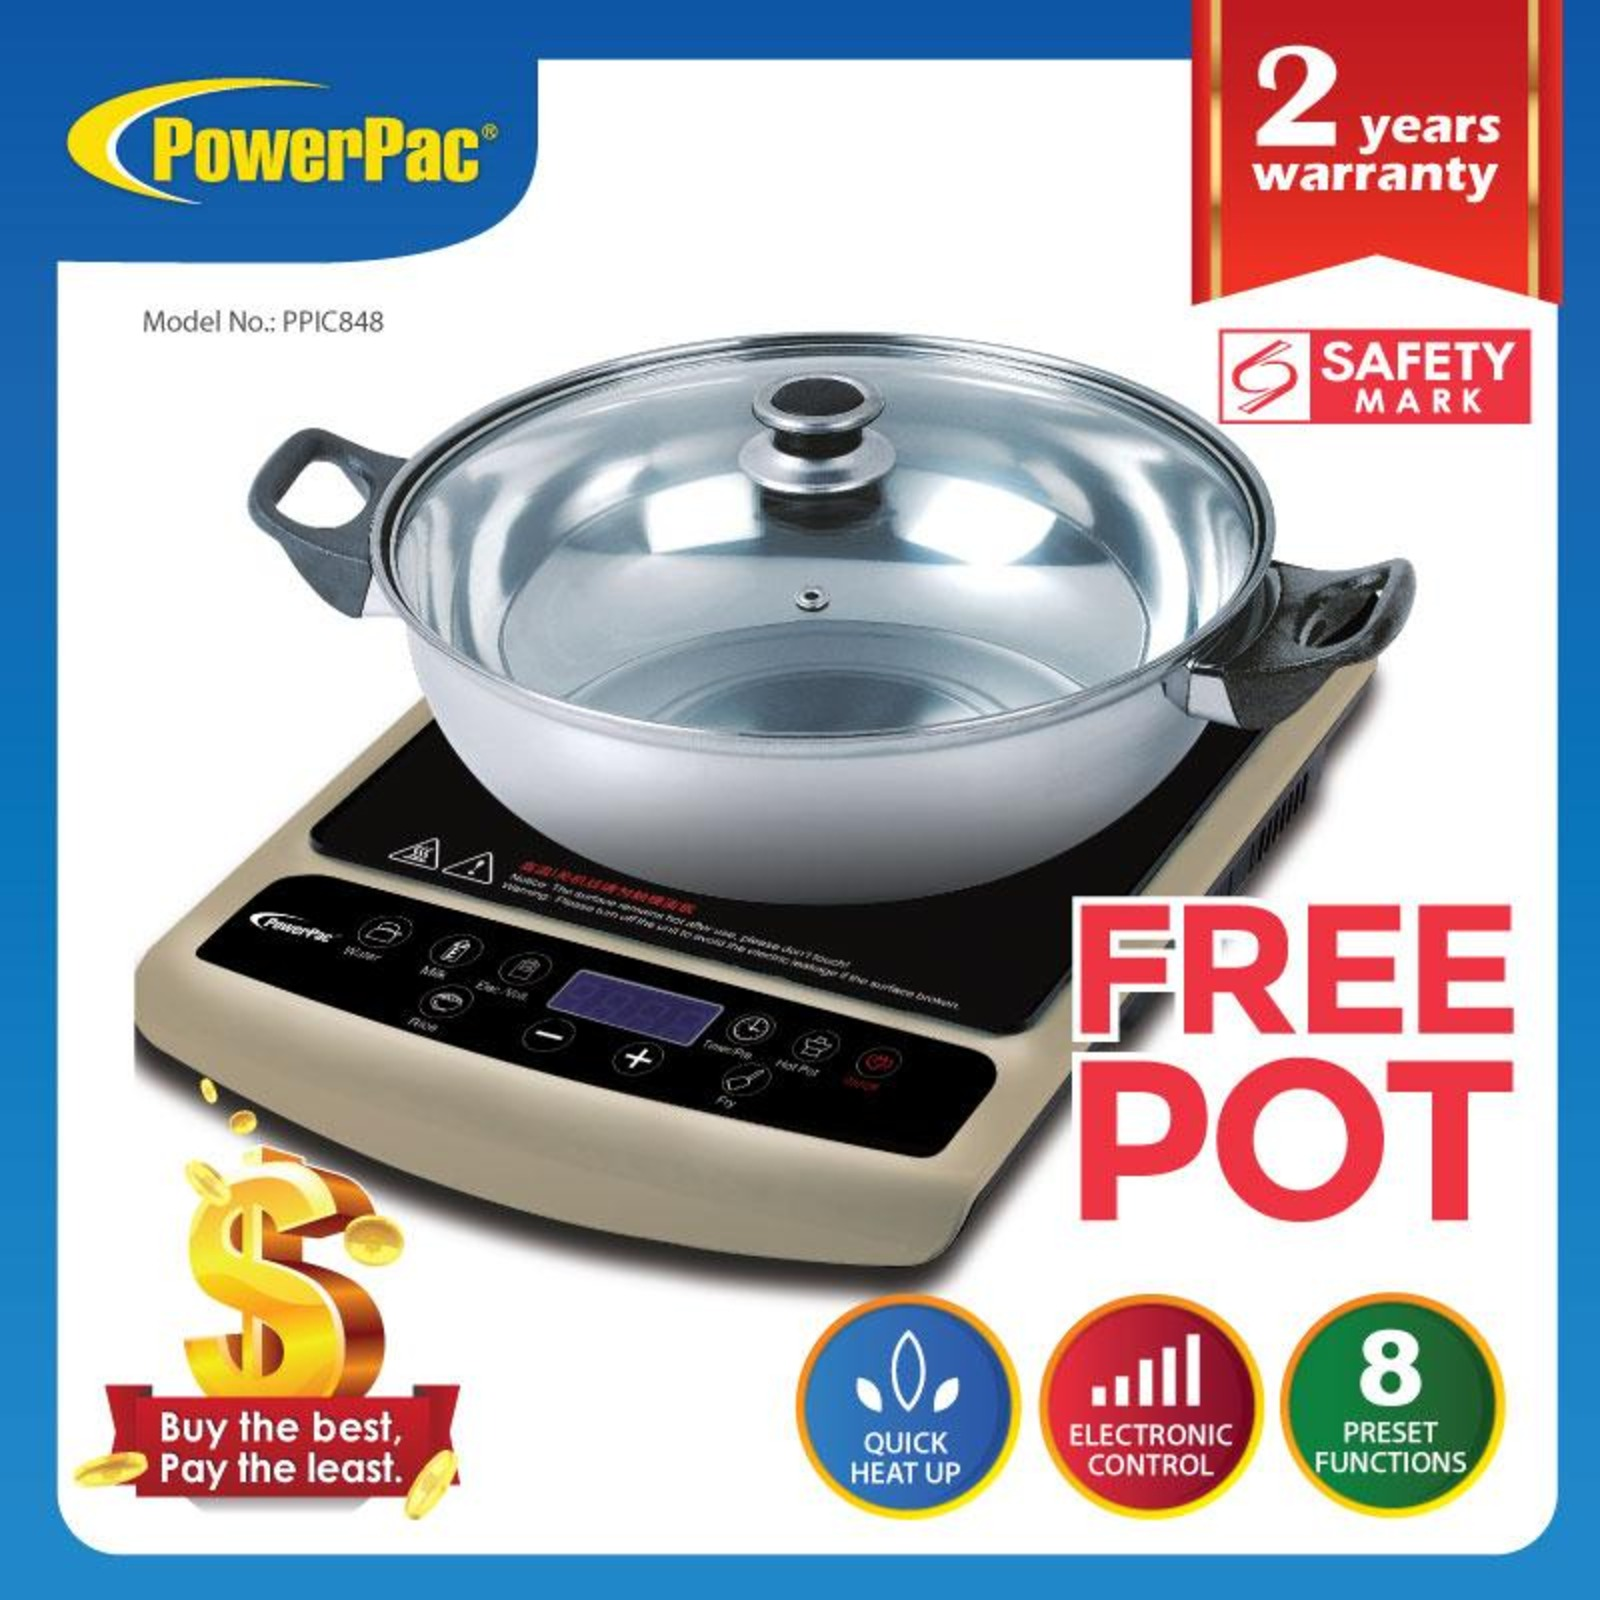 PowerPac Induction Cooker Steamboat 1800W PPIC848